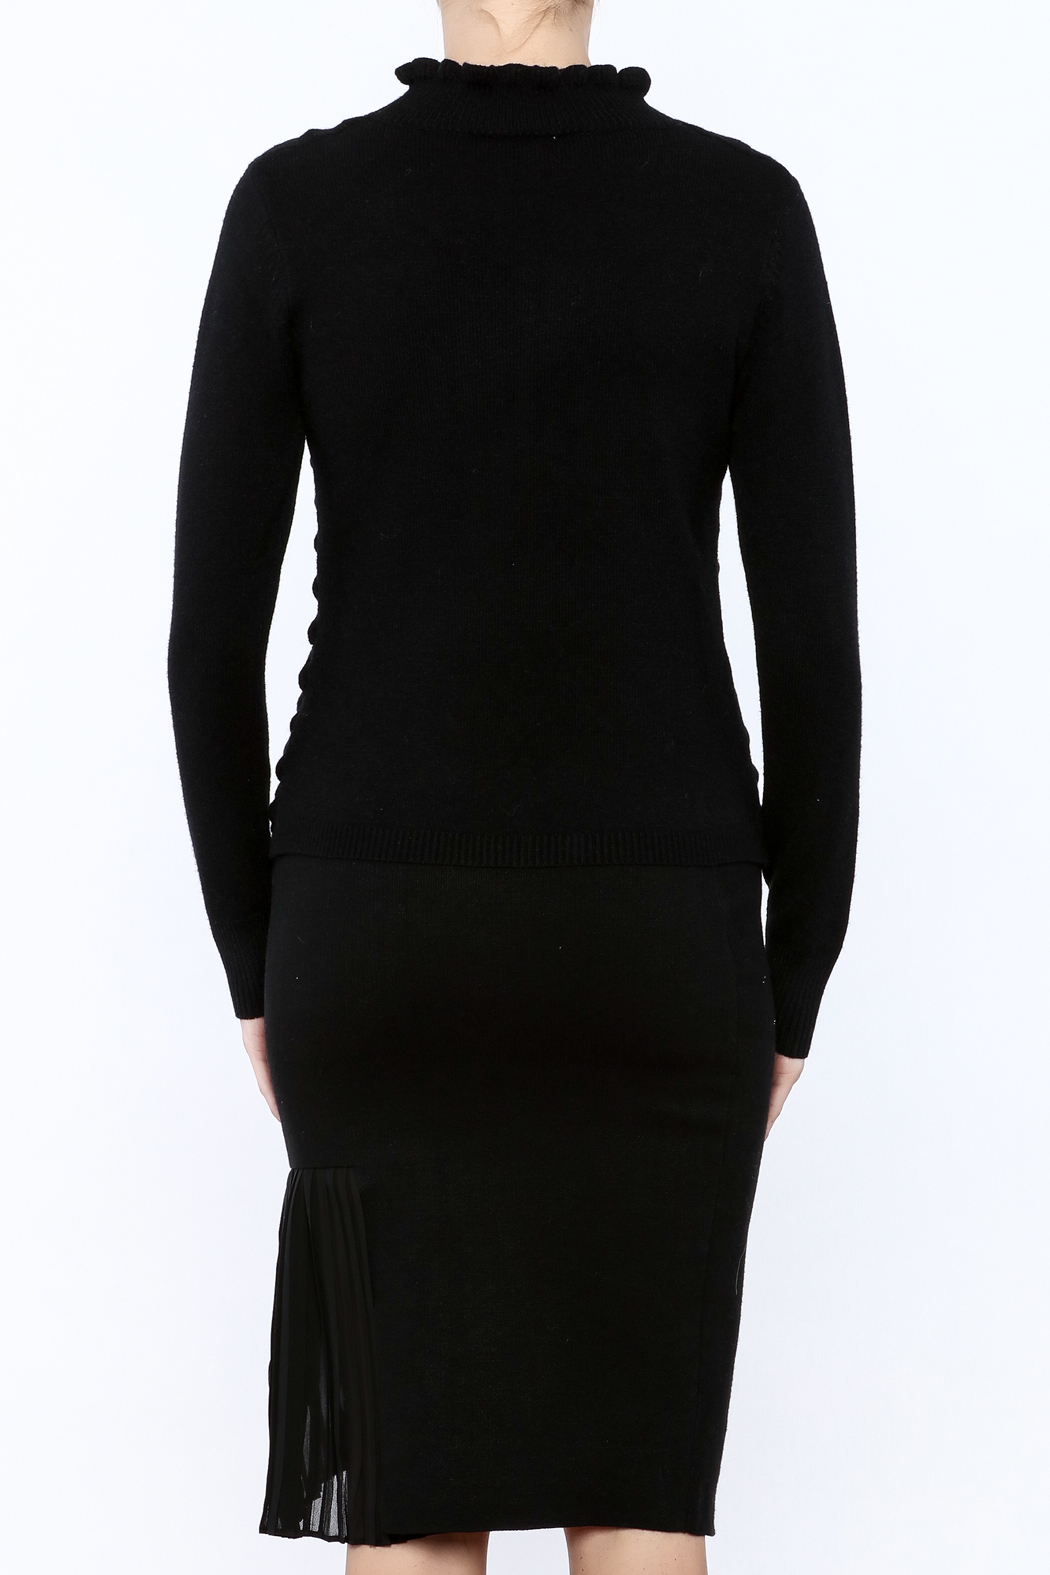 Lucy Paris Long Sleeve Mock Turtleneck Sweater - Back Cropped Image